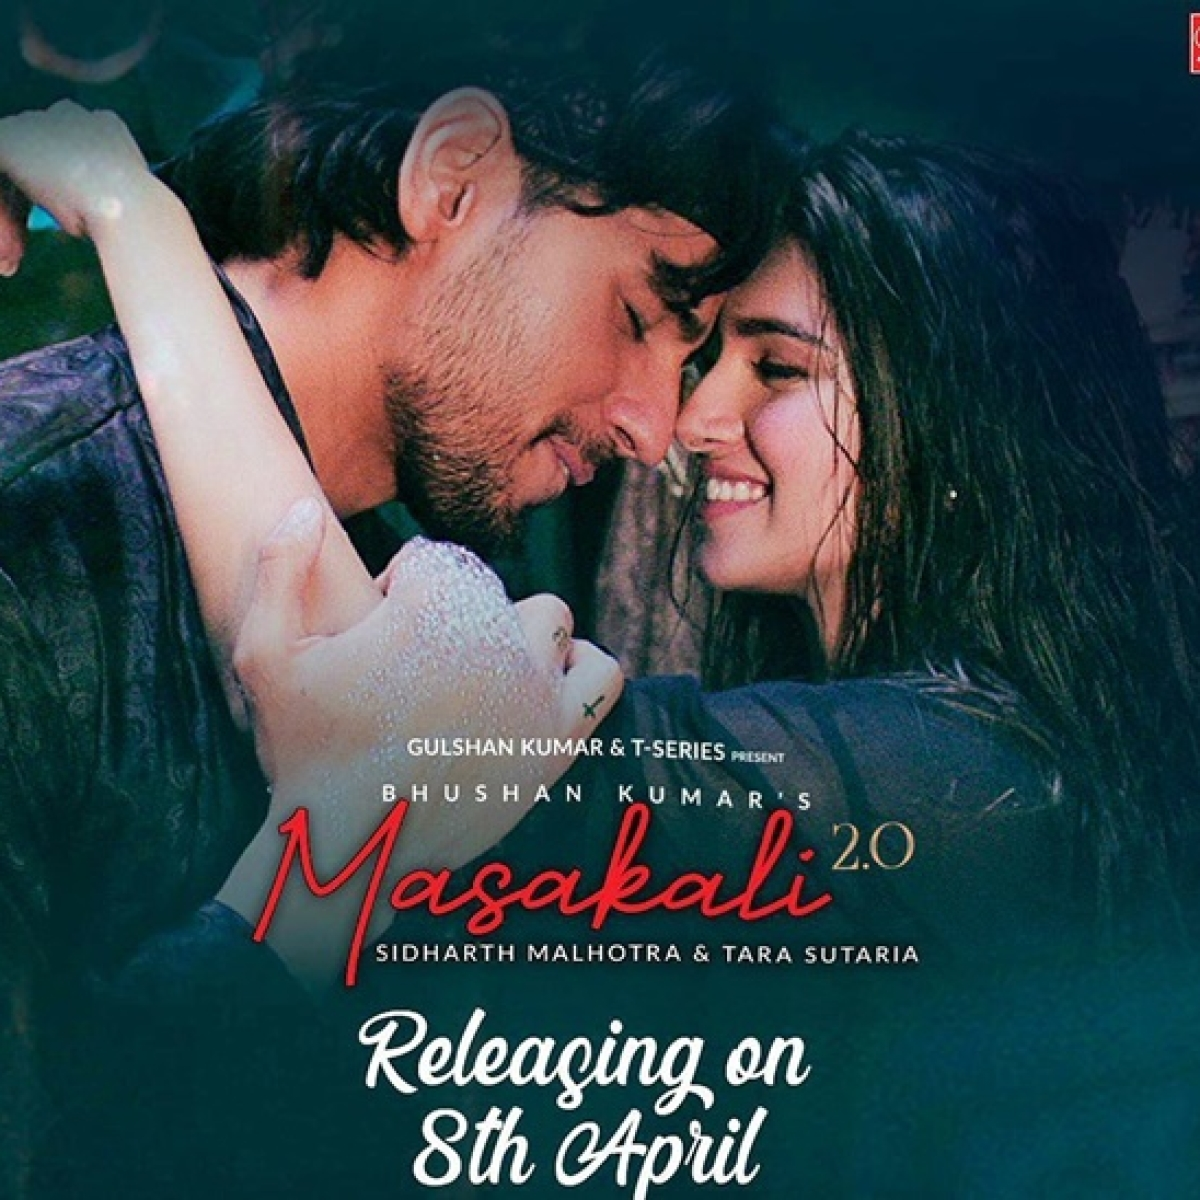 Sidharth Malhotra, Tara Sutaria reunite for Sonam Kapoor's 'Masakali' 2.0 version